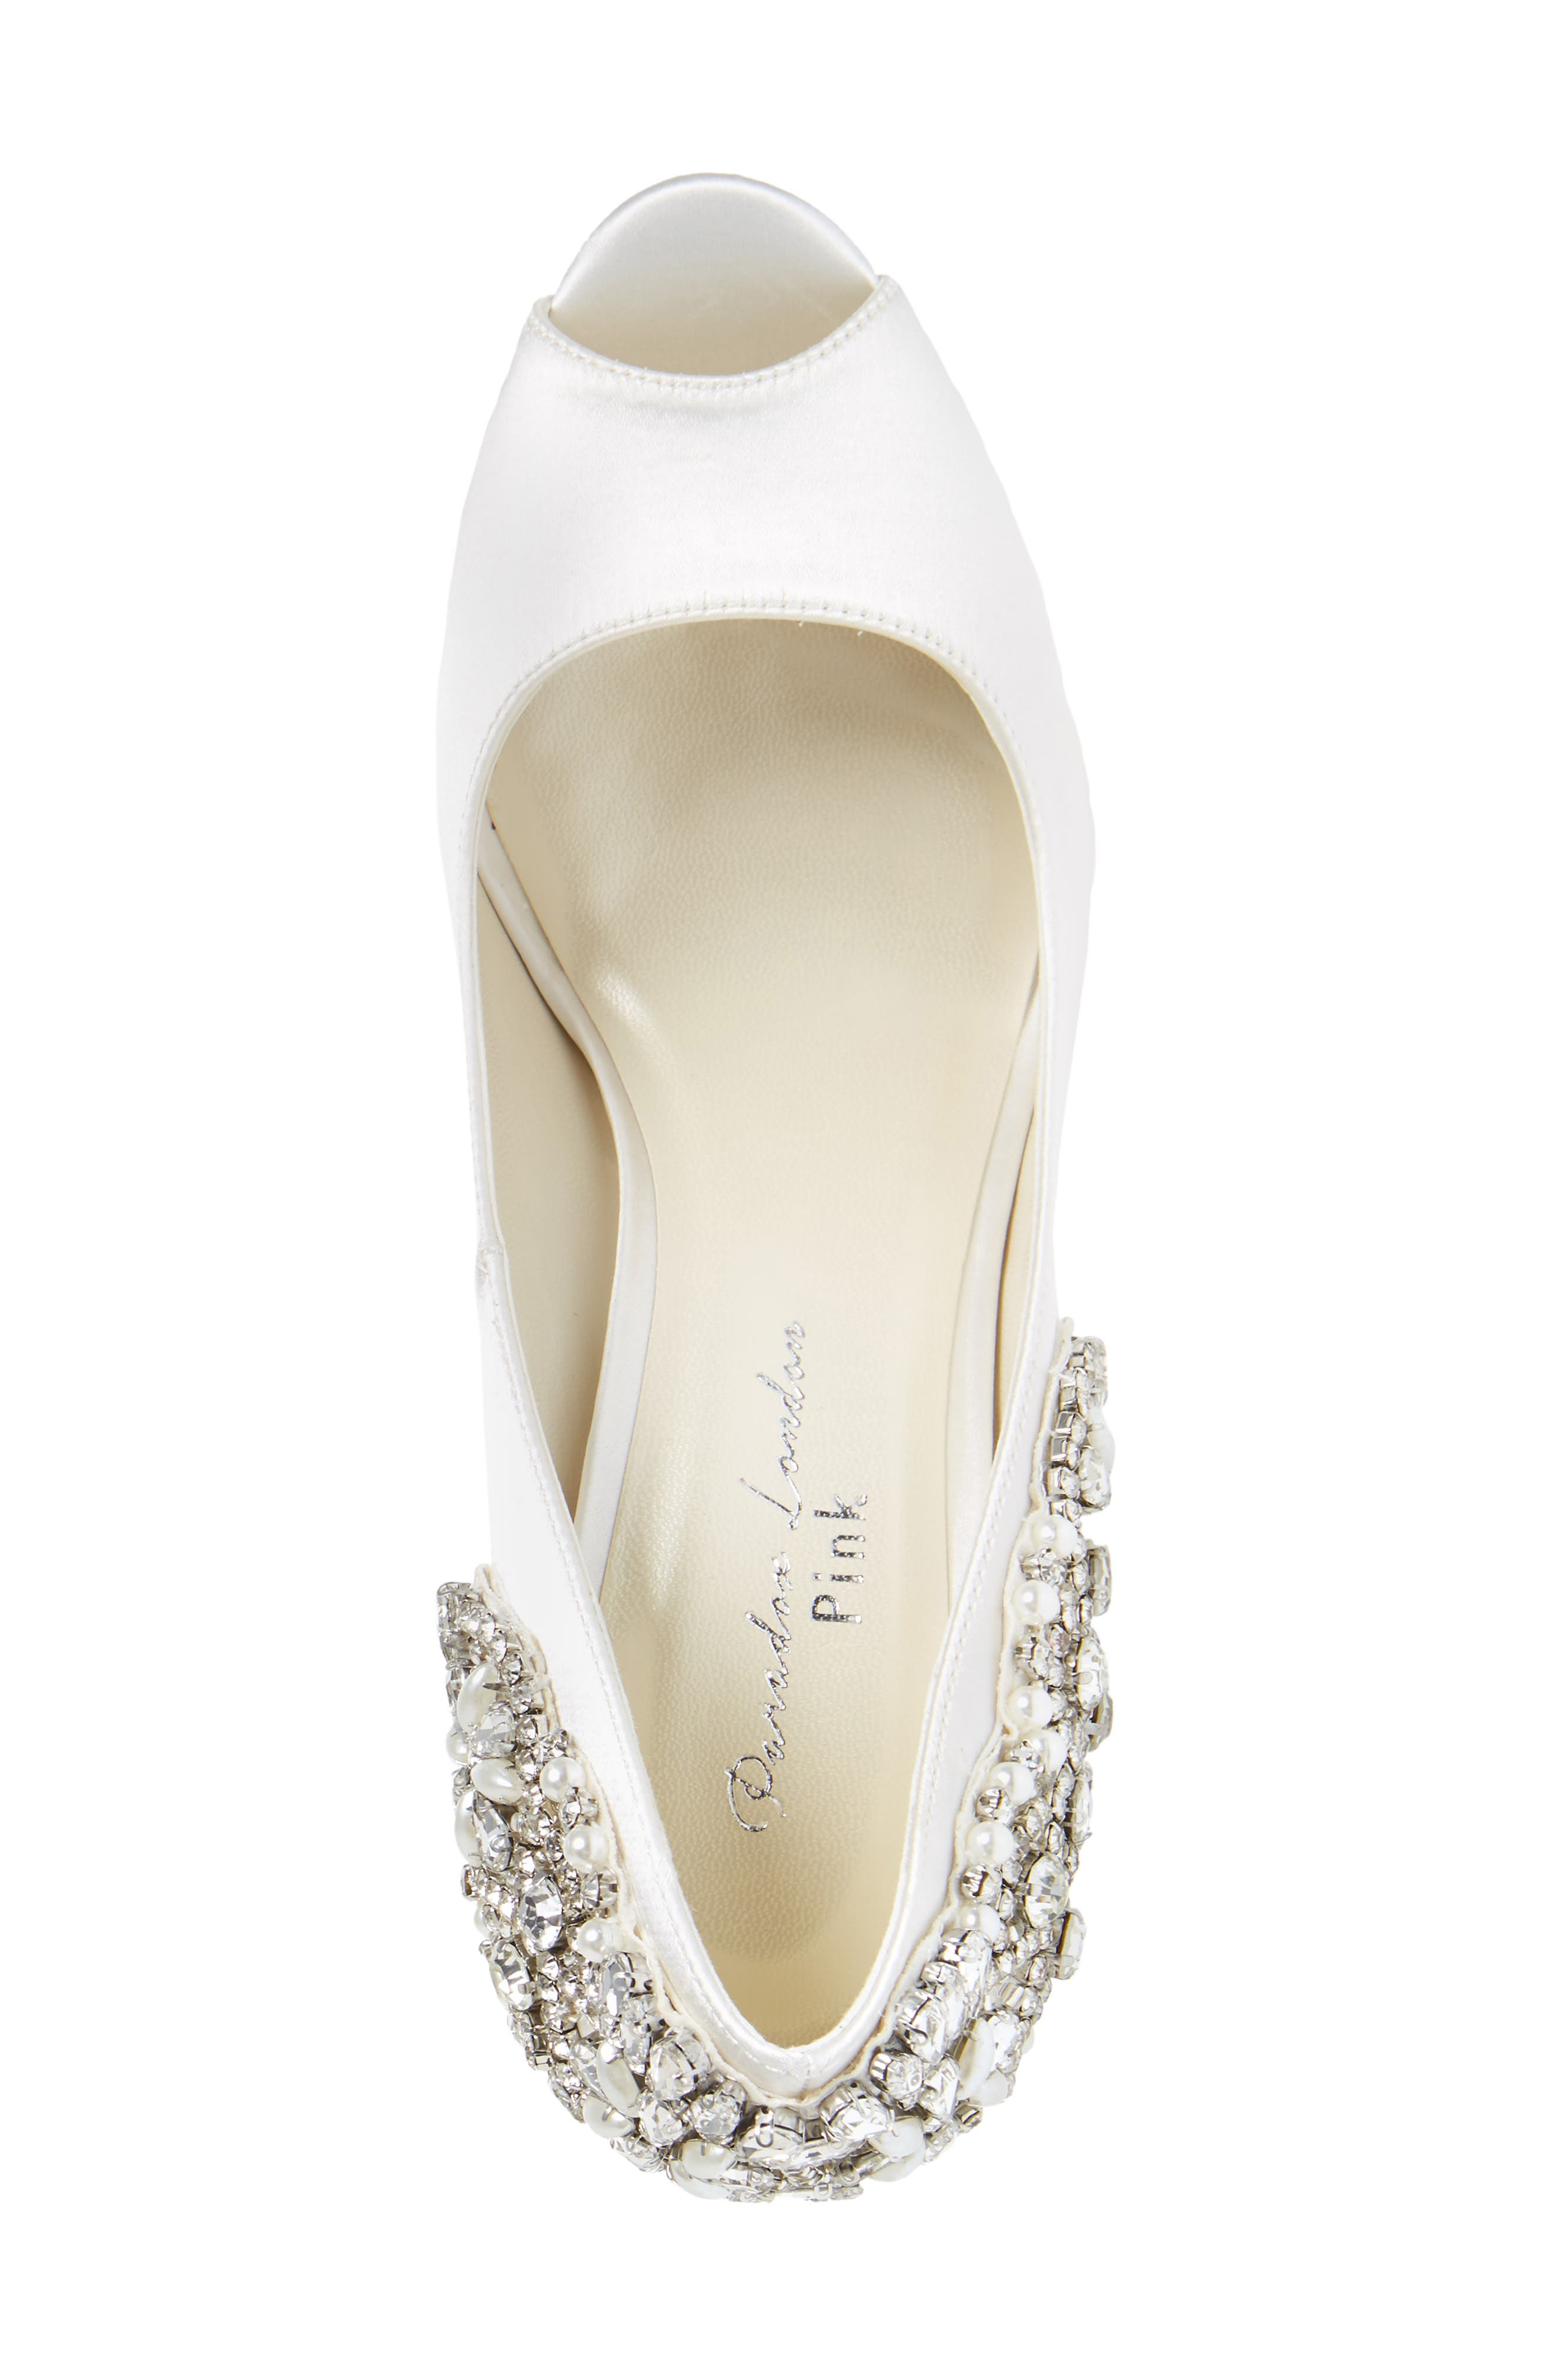 Cynthia Embellished Pump,                             Alternate thumbnail 5, color,                             IVORY SATIN